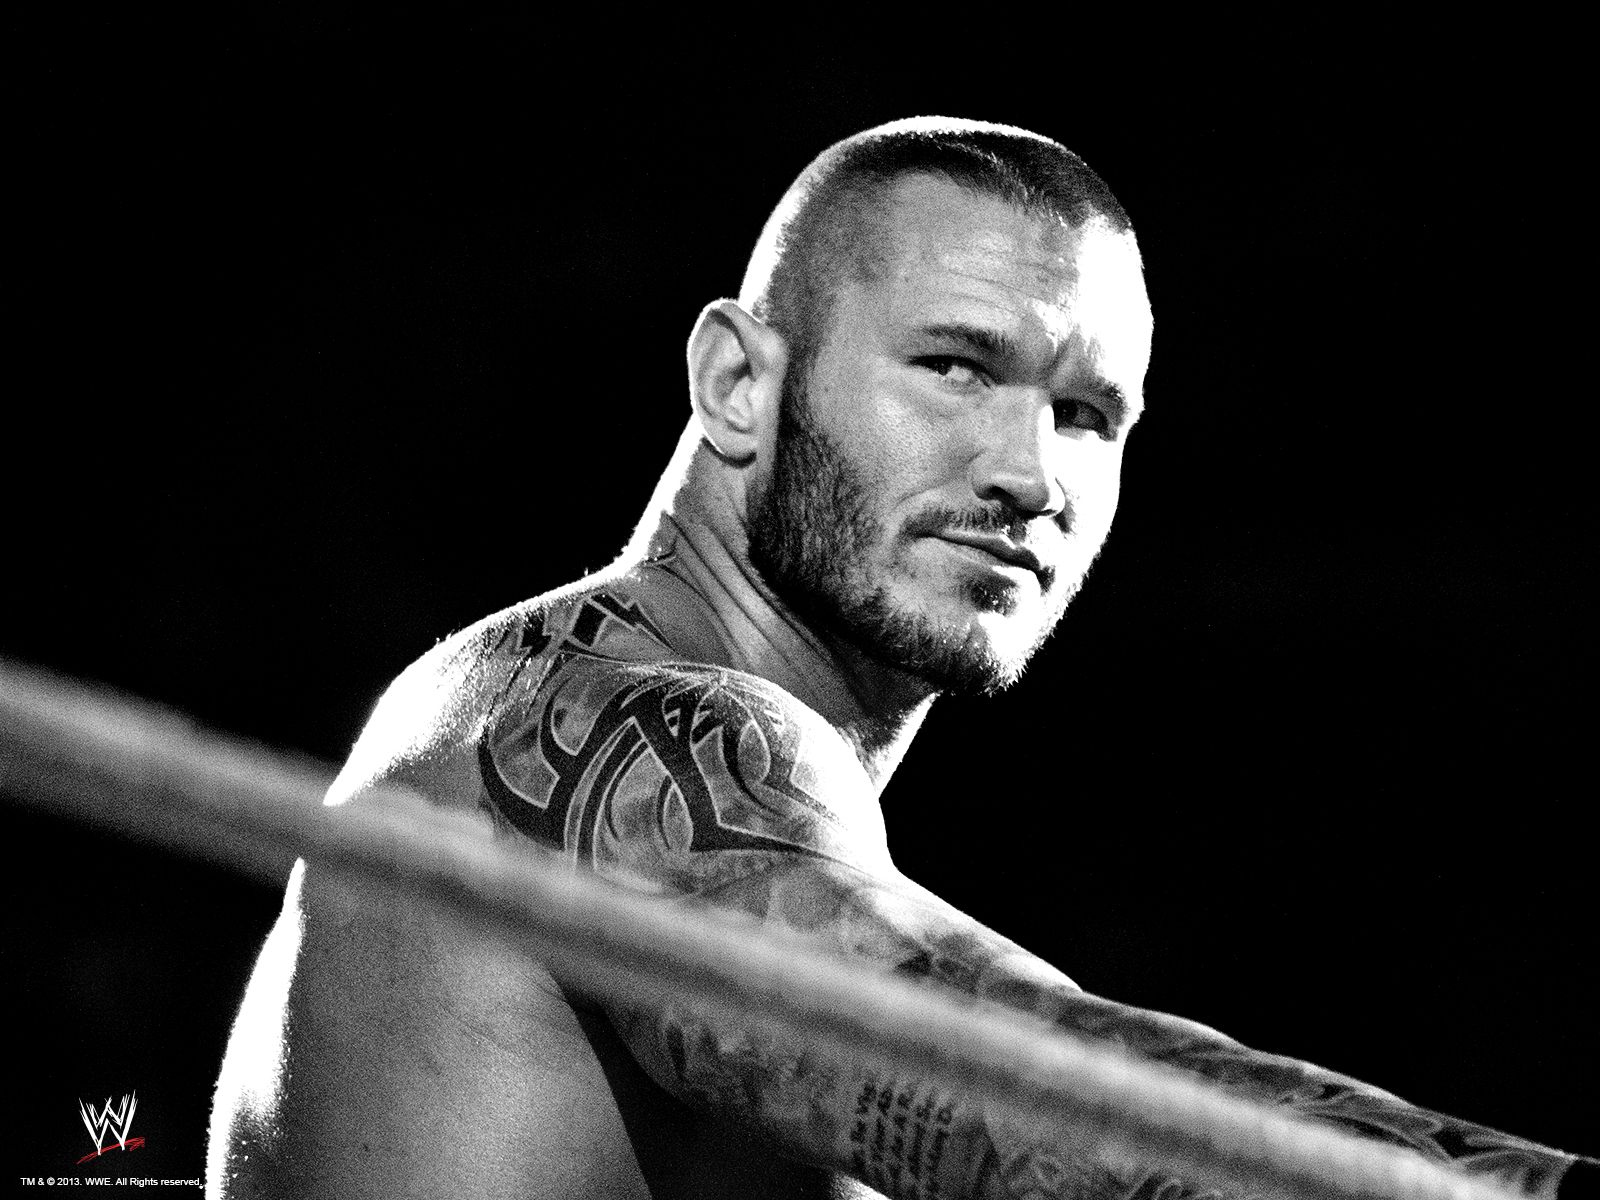 Randy Orton Wallpaper WWE Superstars Wallpapers PPVs